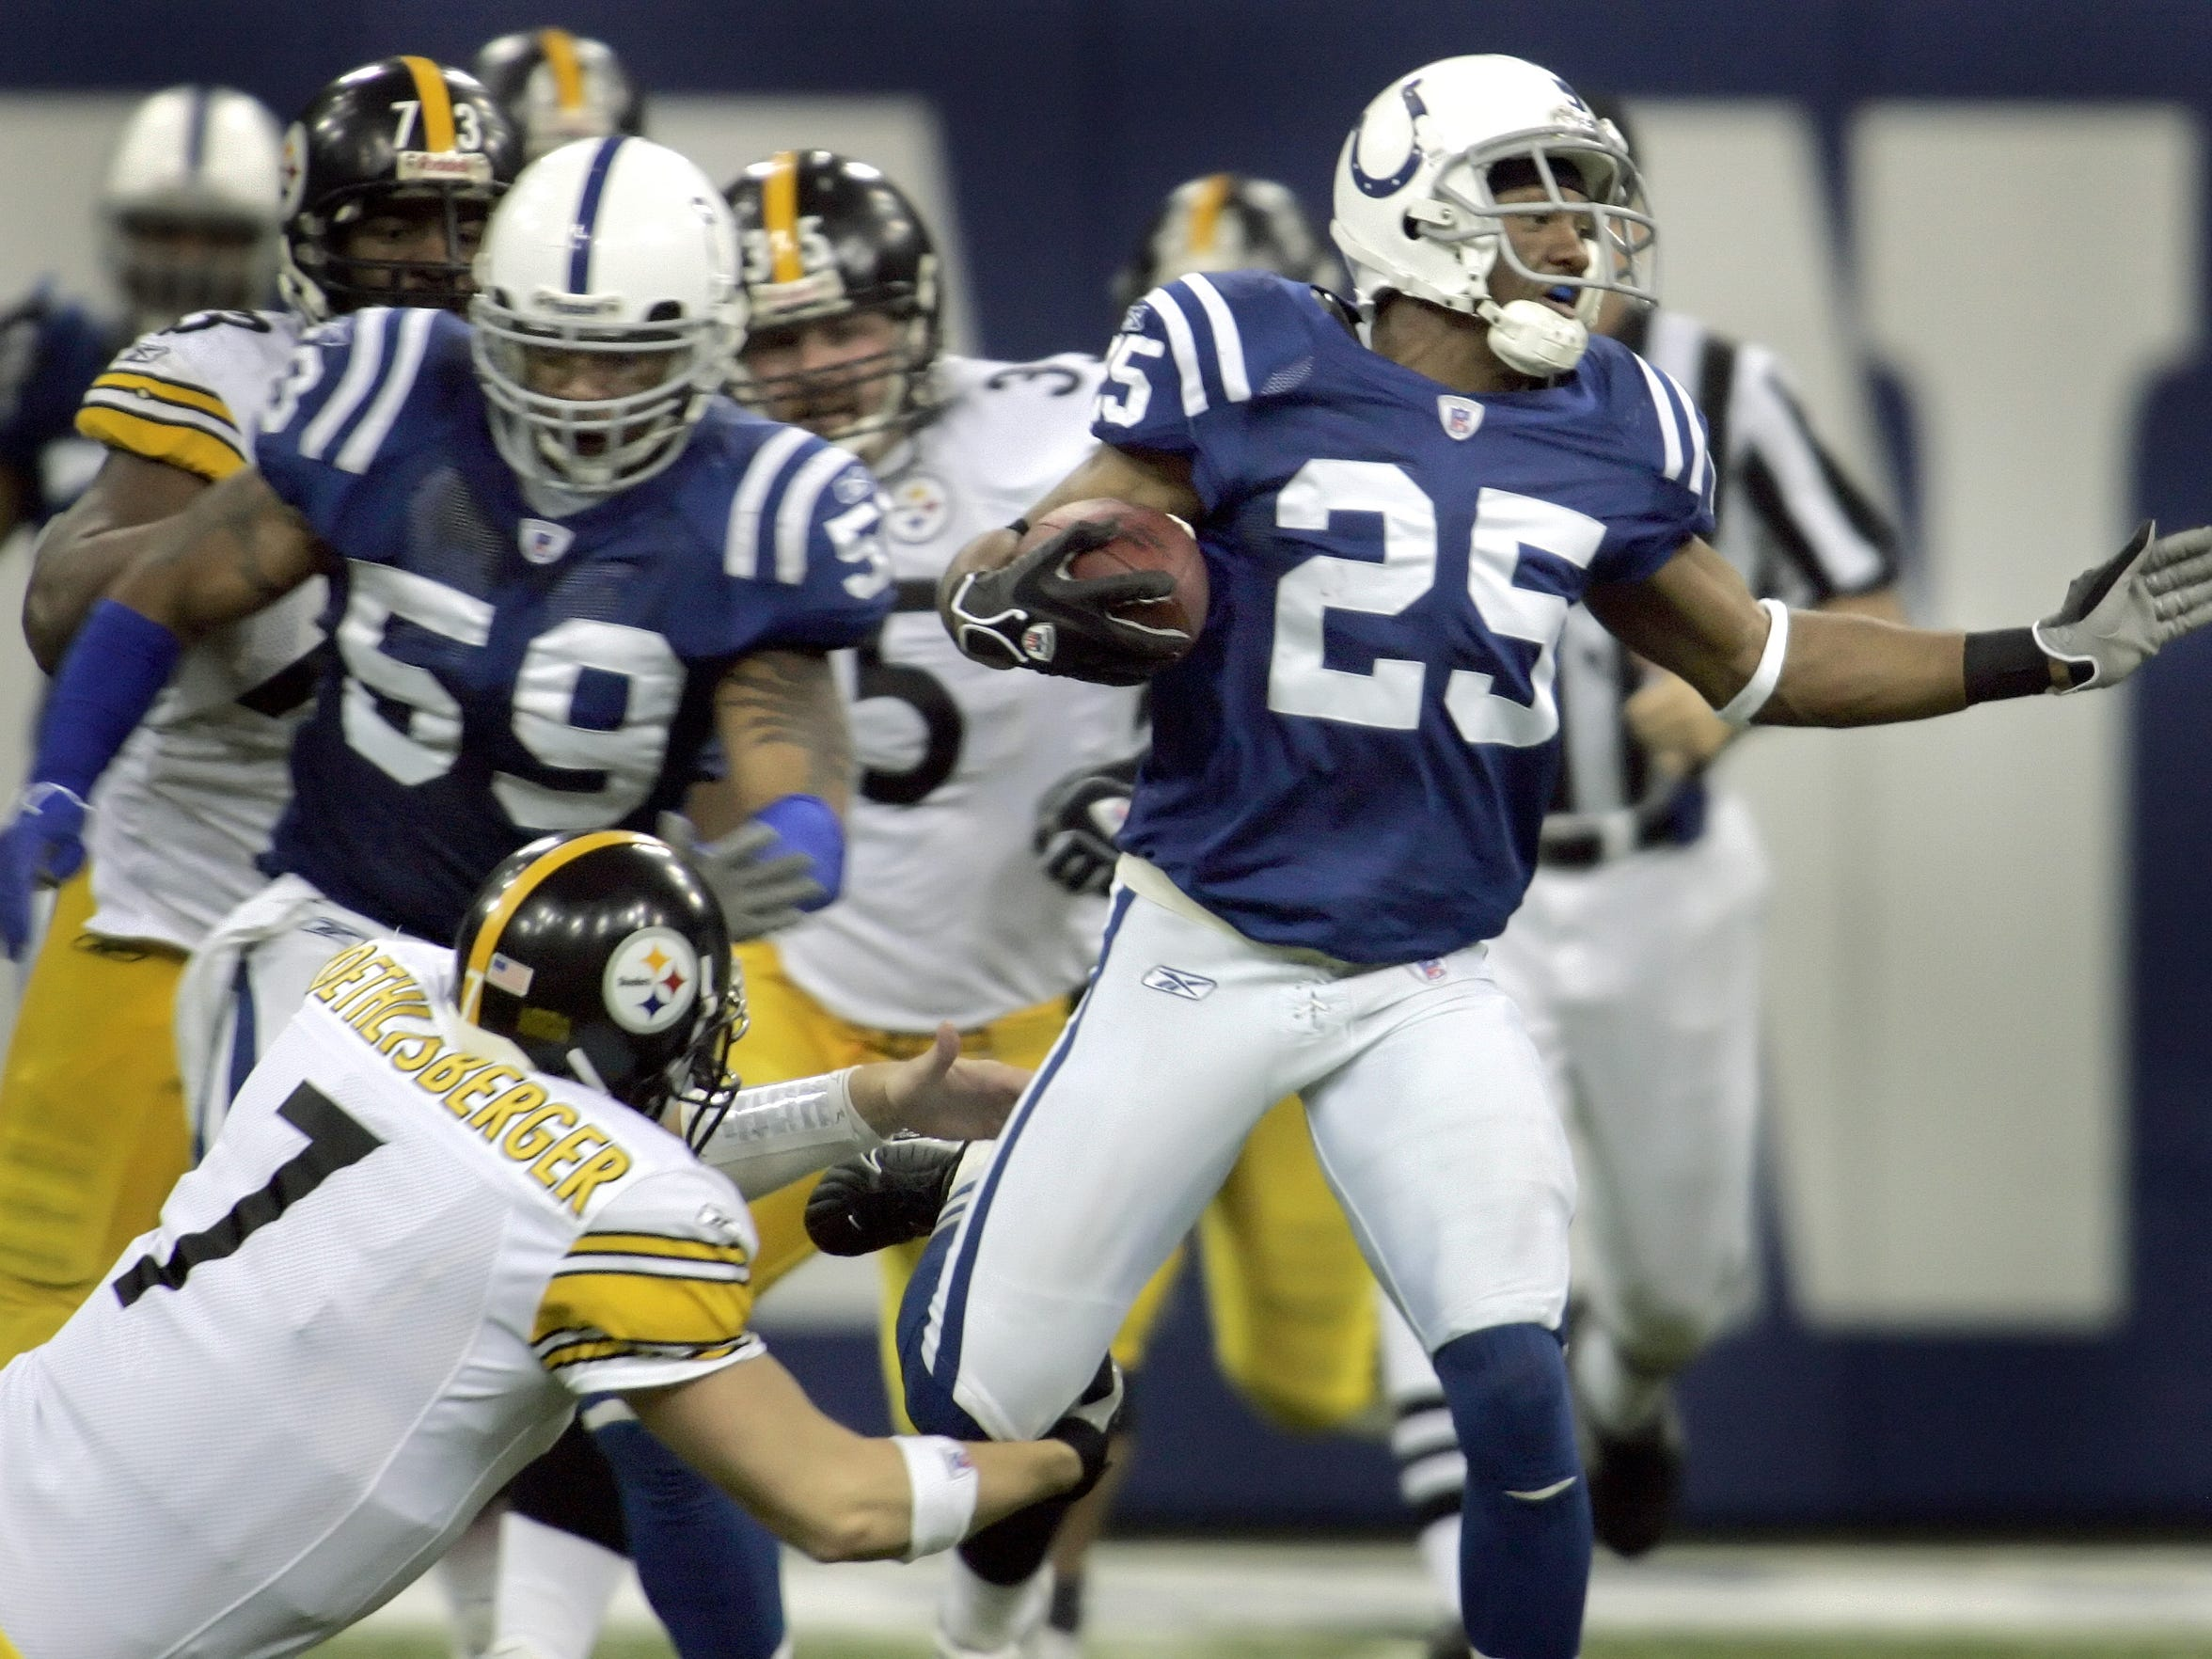 """""""A hell of a tackle,"""" Colts linebacker Gary Brackett says of Ben Roethlisberger bringing Nick Harper to the turf in the fourth quarter of their 2005 divisional playoff meeting at the RCA Dome."""